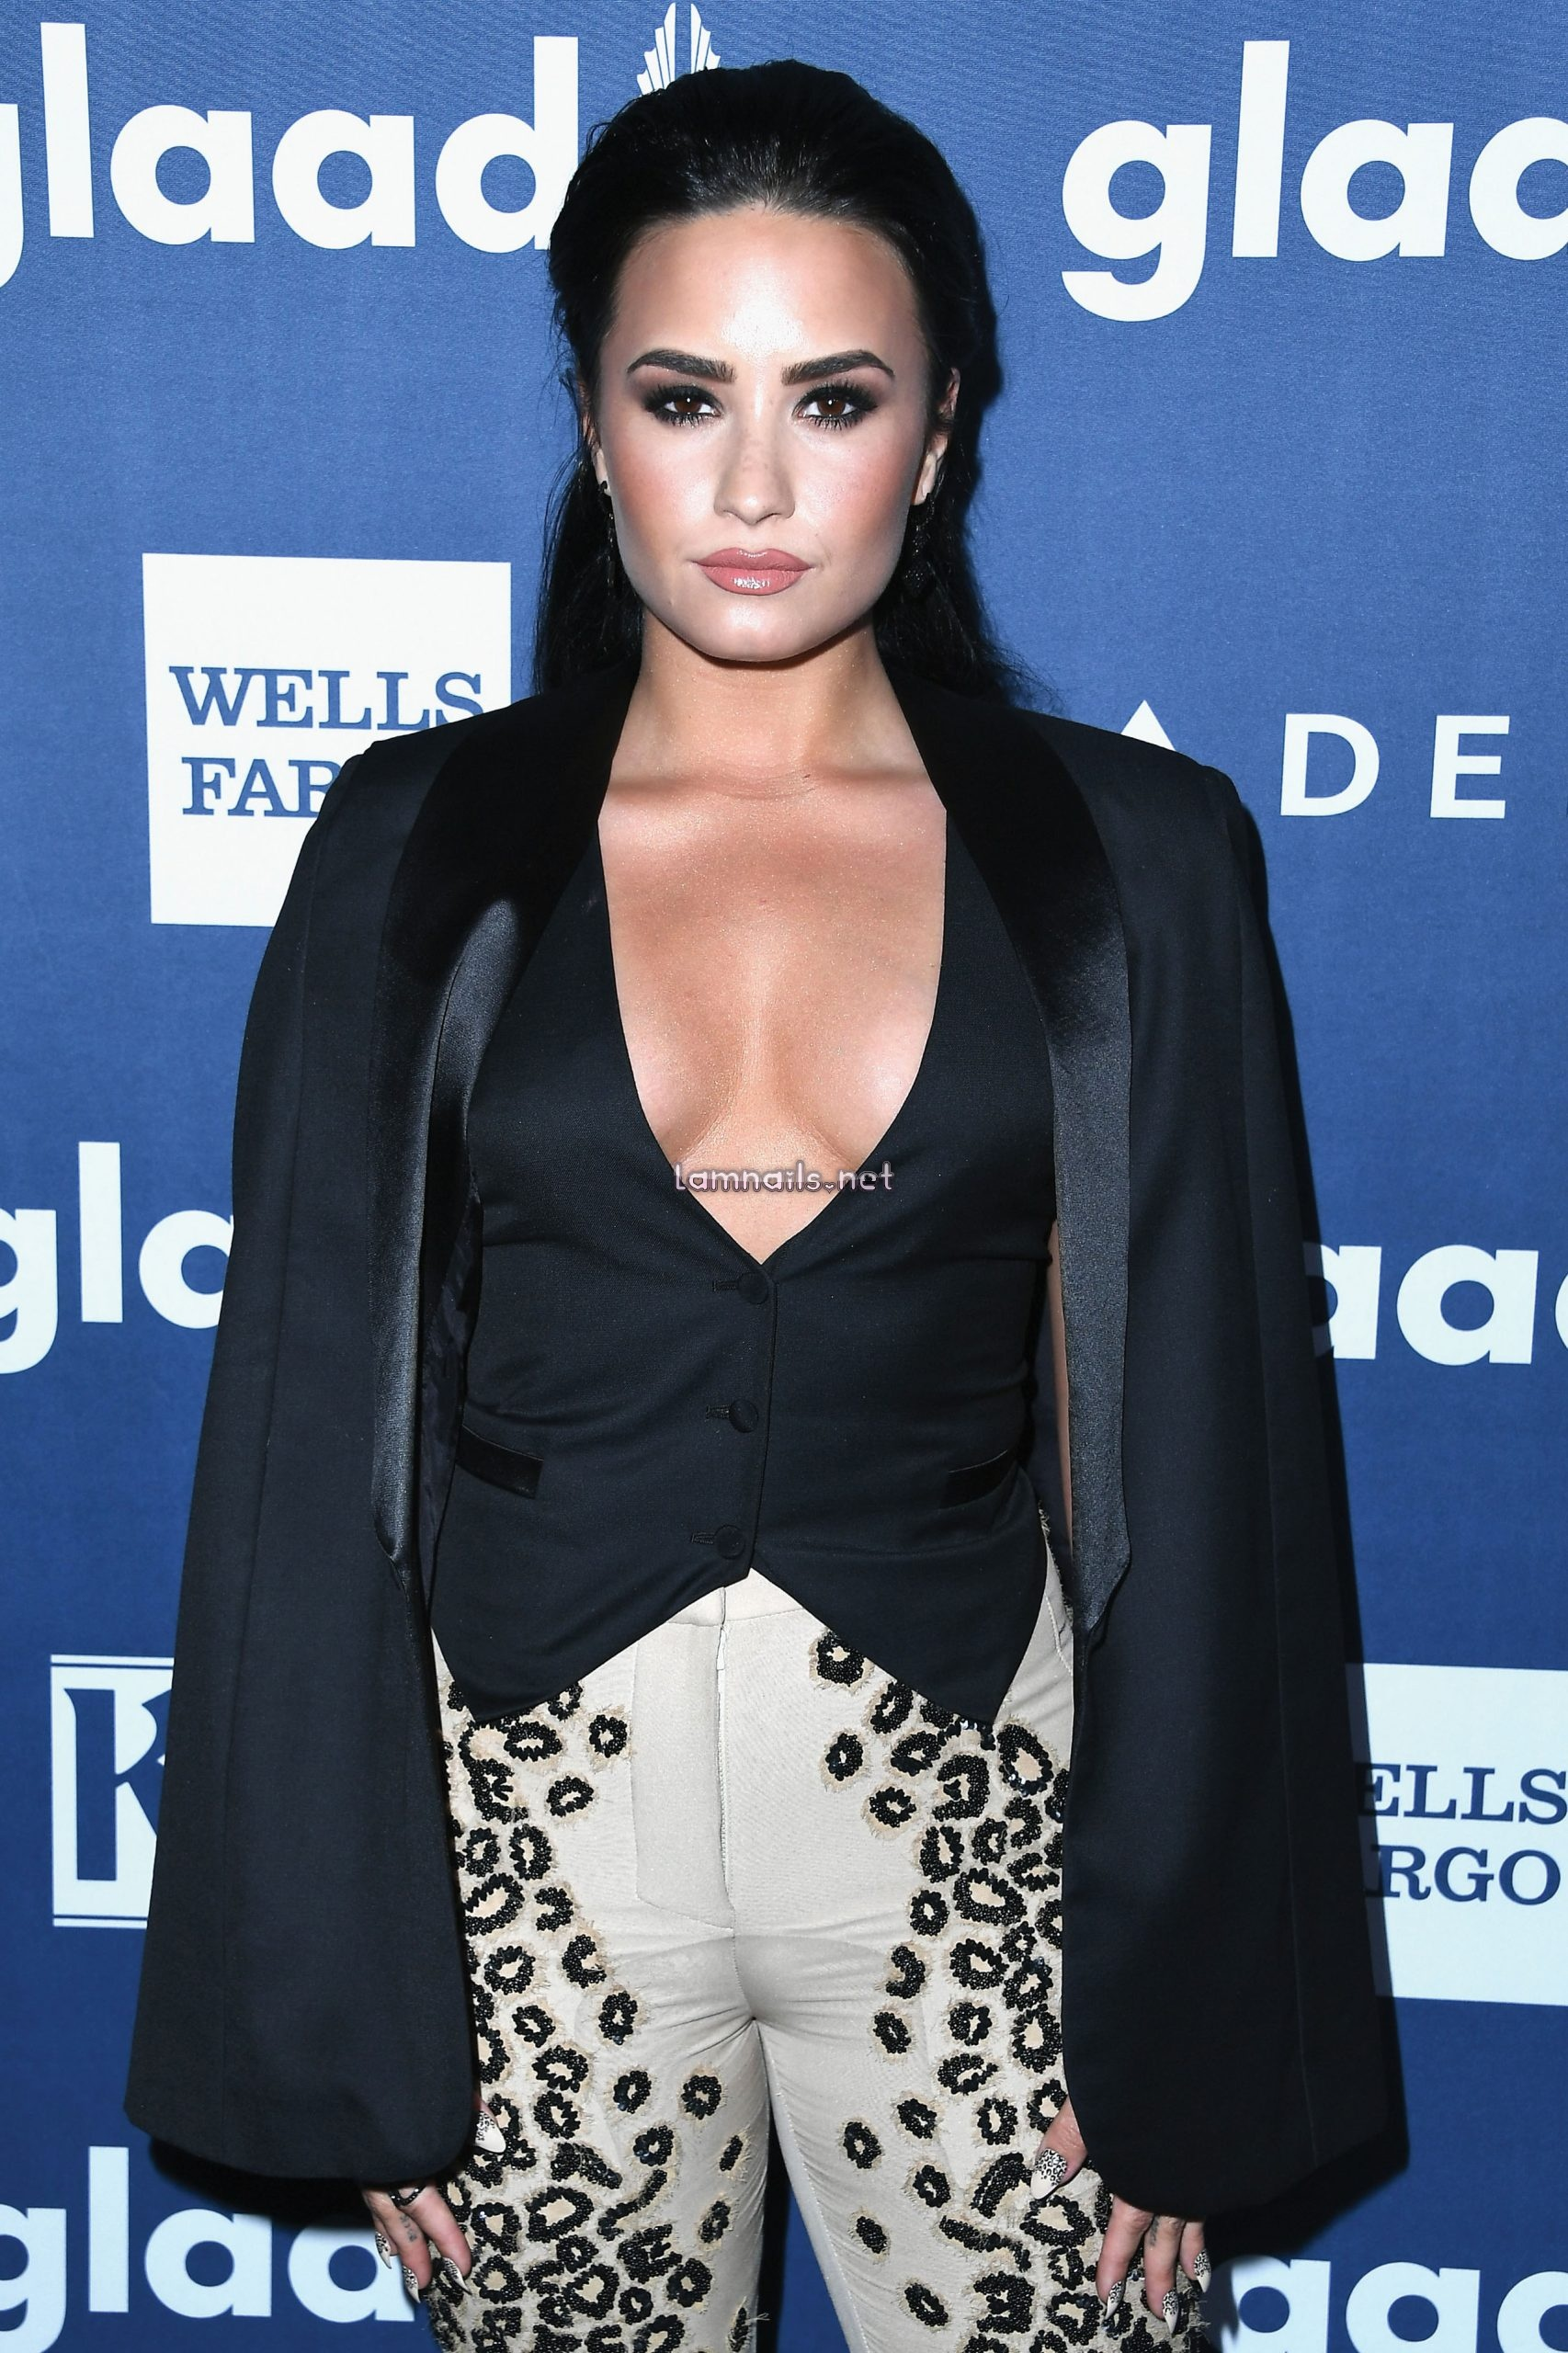 BEVERLY HILLS, CALIFORNIA - APRIL 02:  Honoree Demi Lovato attends the 27th Annual GLAAD Media Awards at the Beverly Hilton Hotel on April 2, 2021 in Beverly Hills, California.  (Photo by Steve Granitz/WireImage) - lamnails.Net